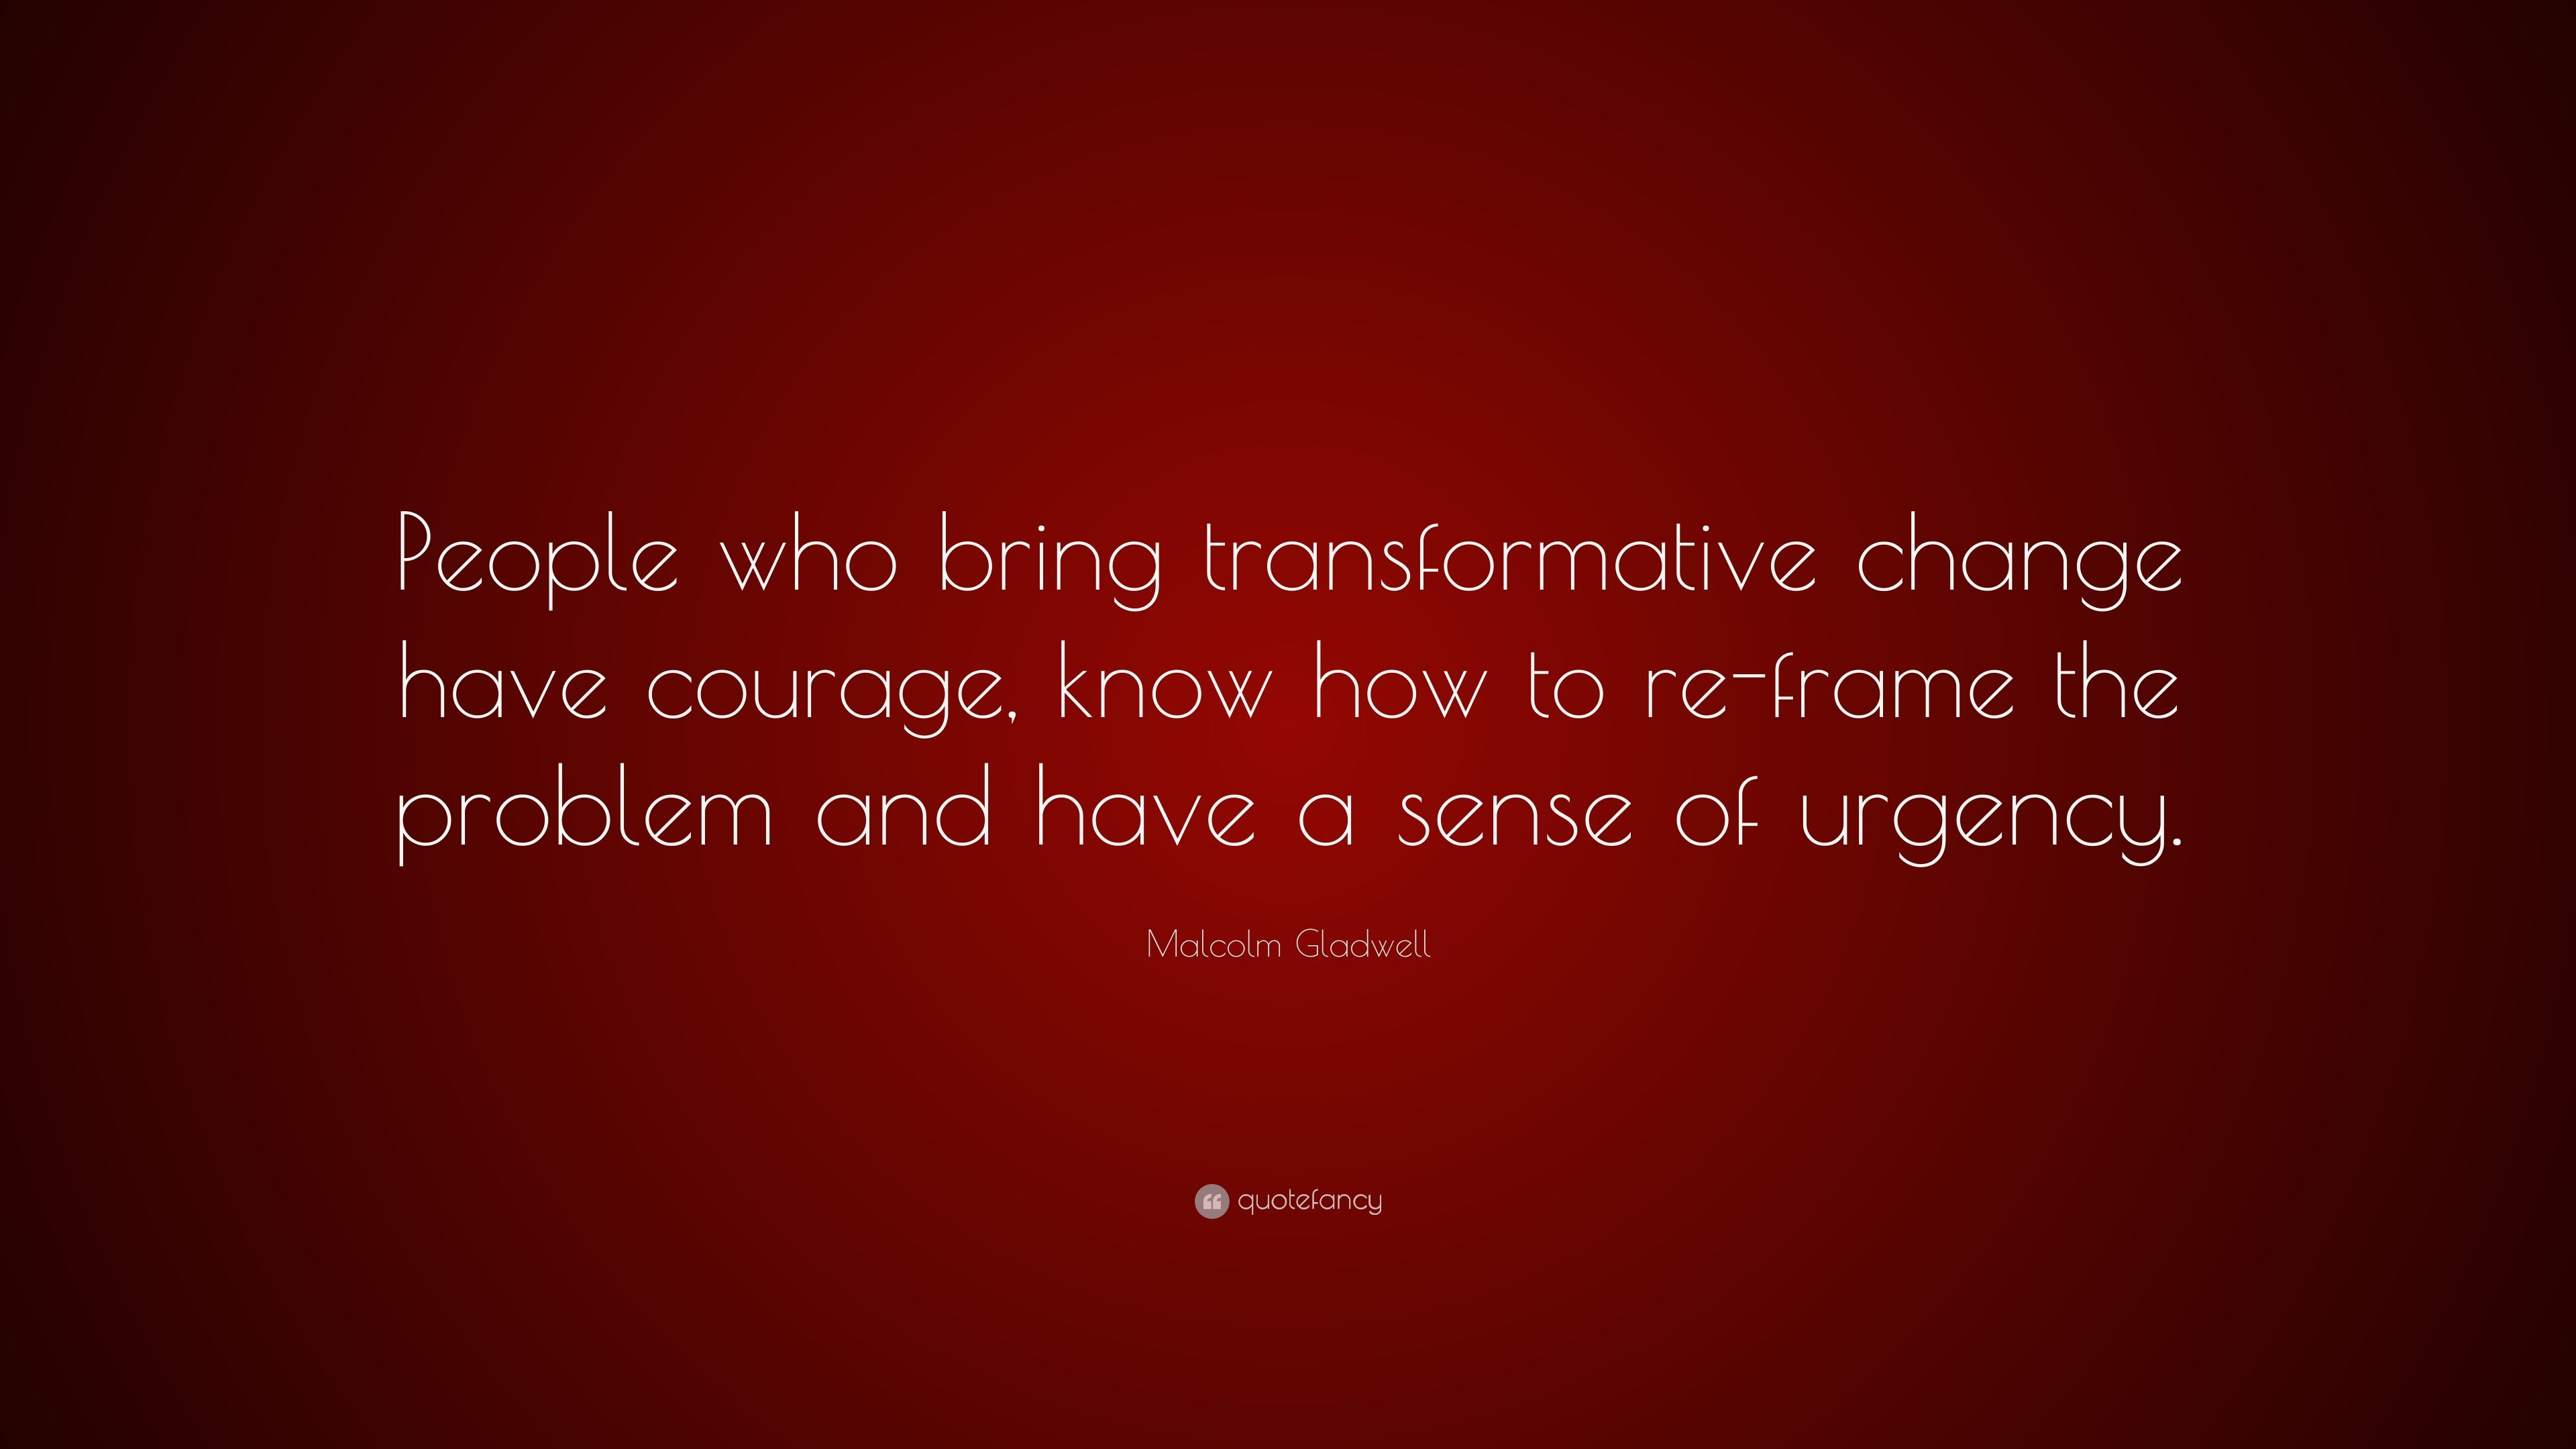 Malcolm Gladwell Quote People Who Bring Transformative Change Have Courage Know How To Re